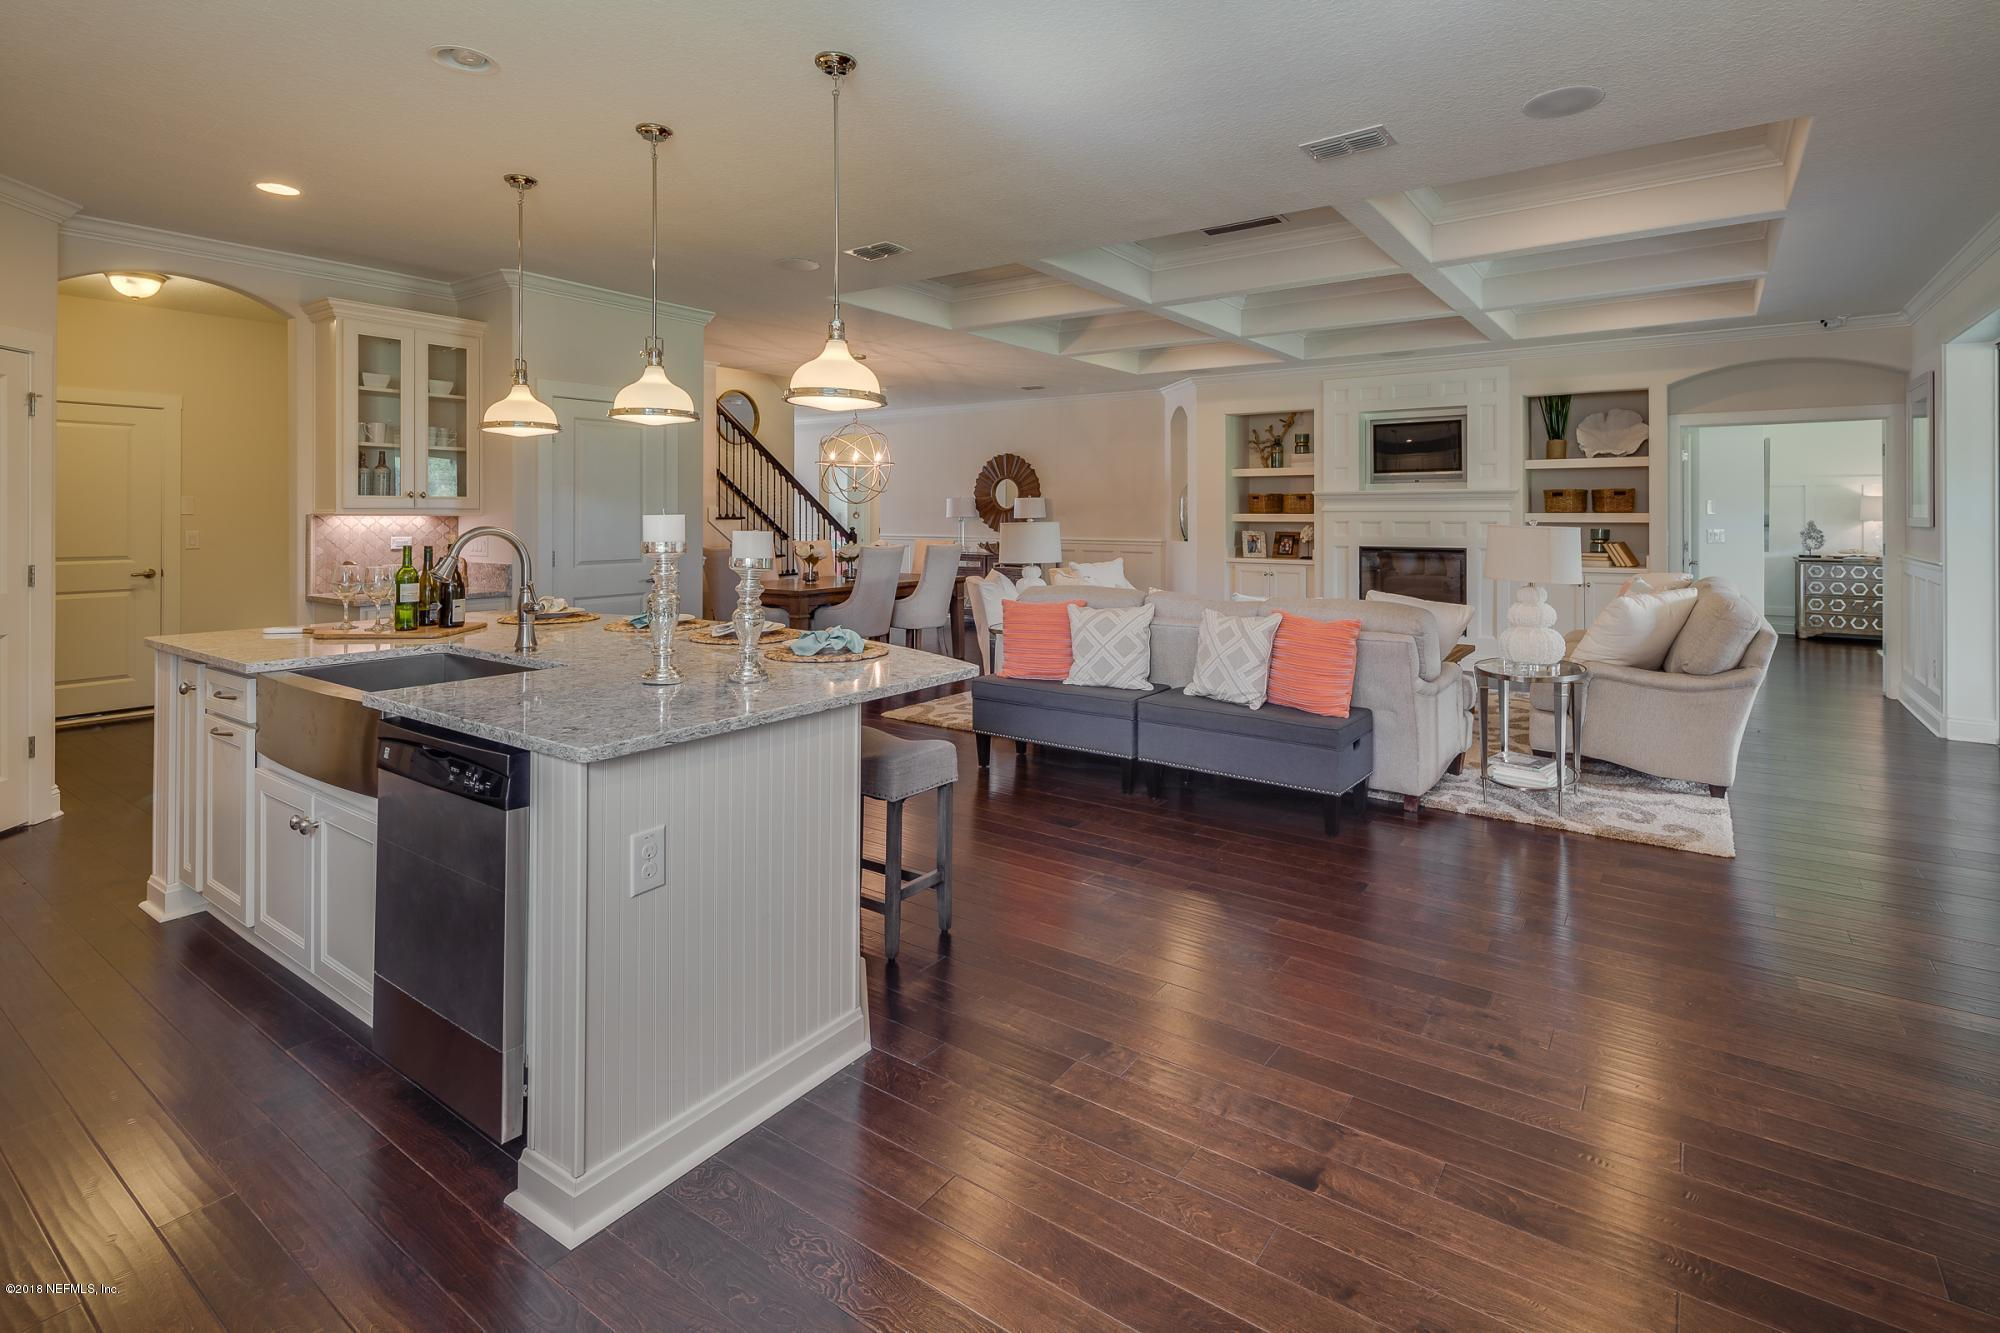 167 TOPSIDE, ST JOHNS, FLORIDA 32259, 5 Bedrooms Bedrooms, ,4 BathroomsBathrooms,Residential - single family,For sale,TOPSIDE,952221